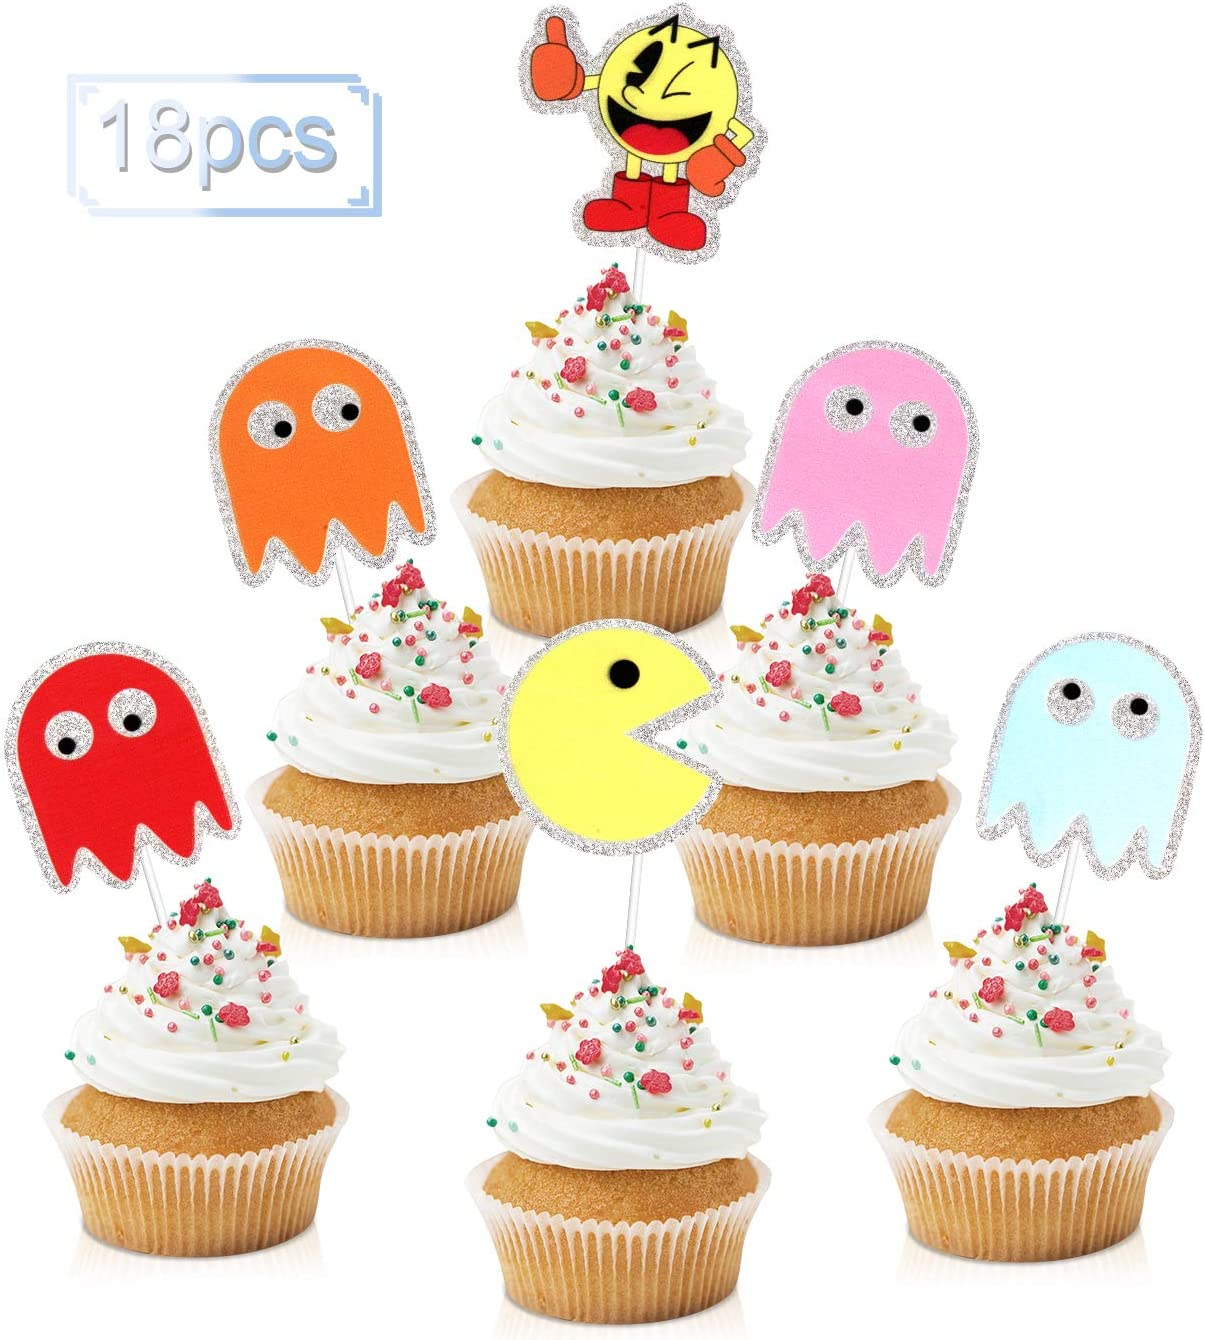 18pcs Pac-Man Cupcake Toppers - Retro Video Game Party Glitter Pacman Ghost Cupcake Toppers Supplies - Boys 80'S Game On Party Dessert Food Picks Decorations